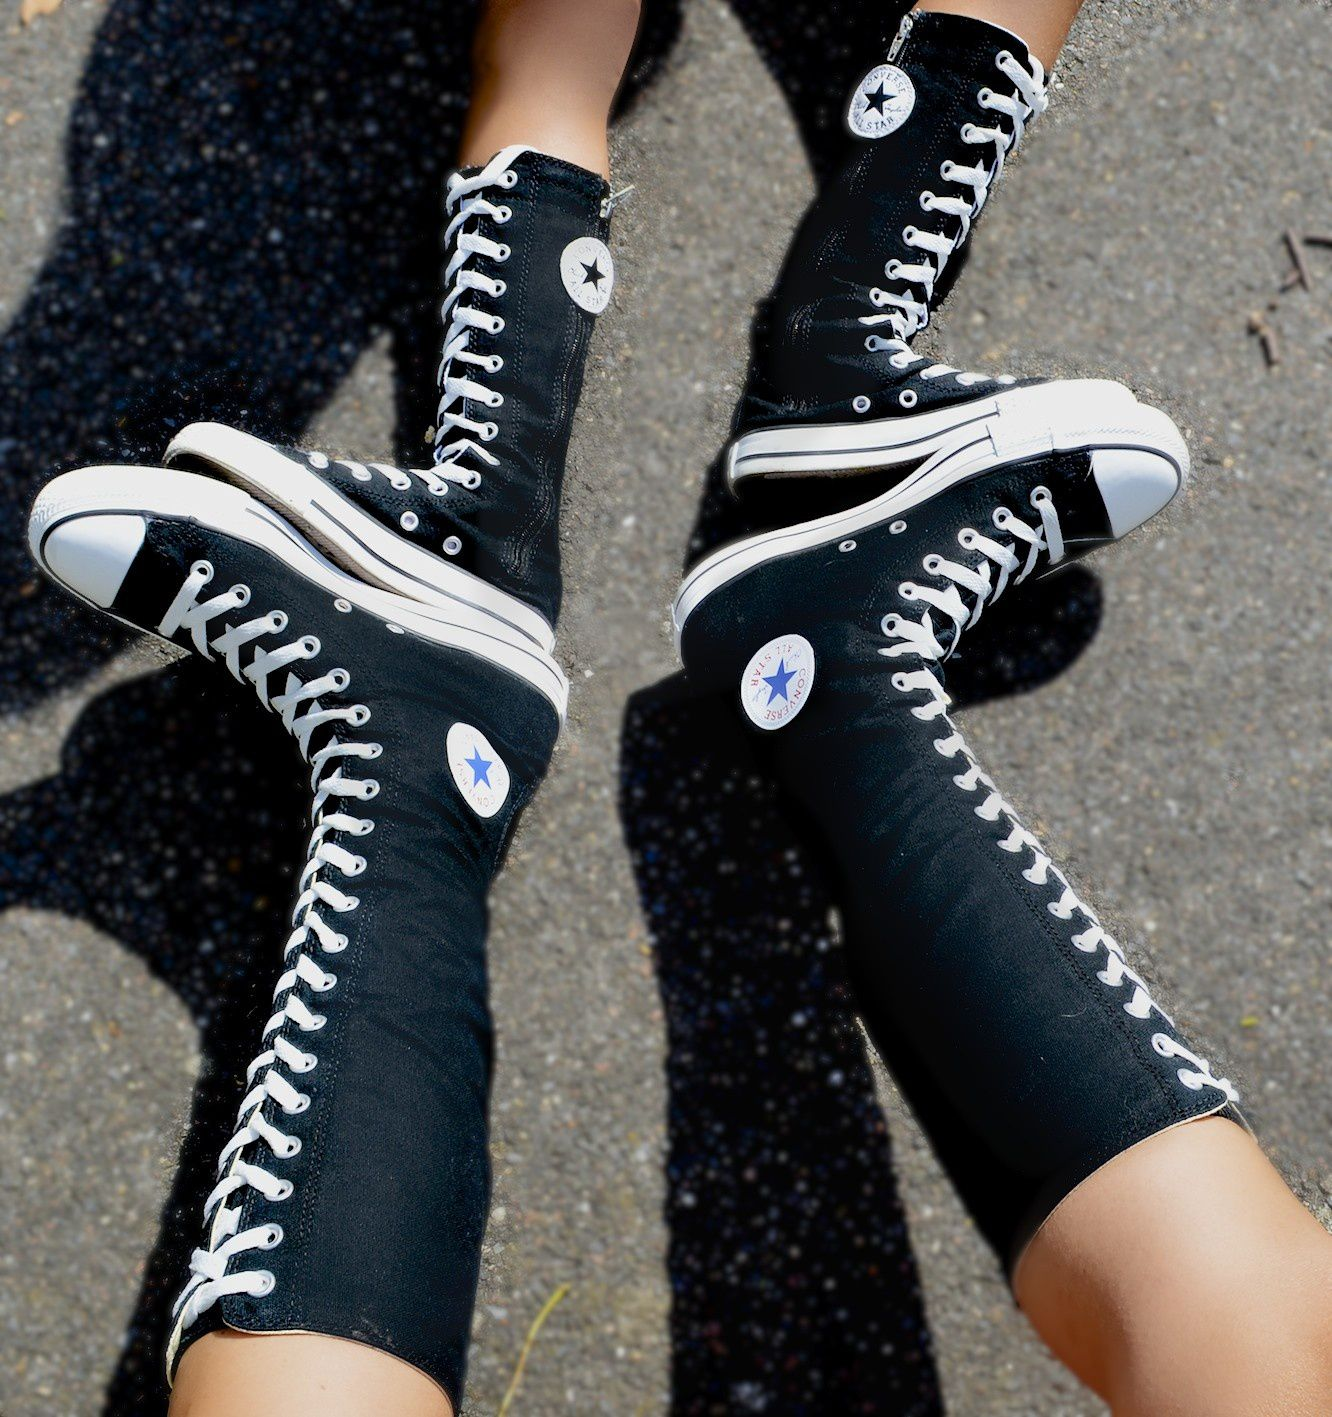 Converse Style - So French By Naty